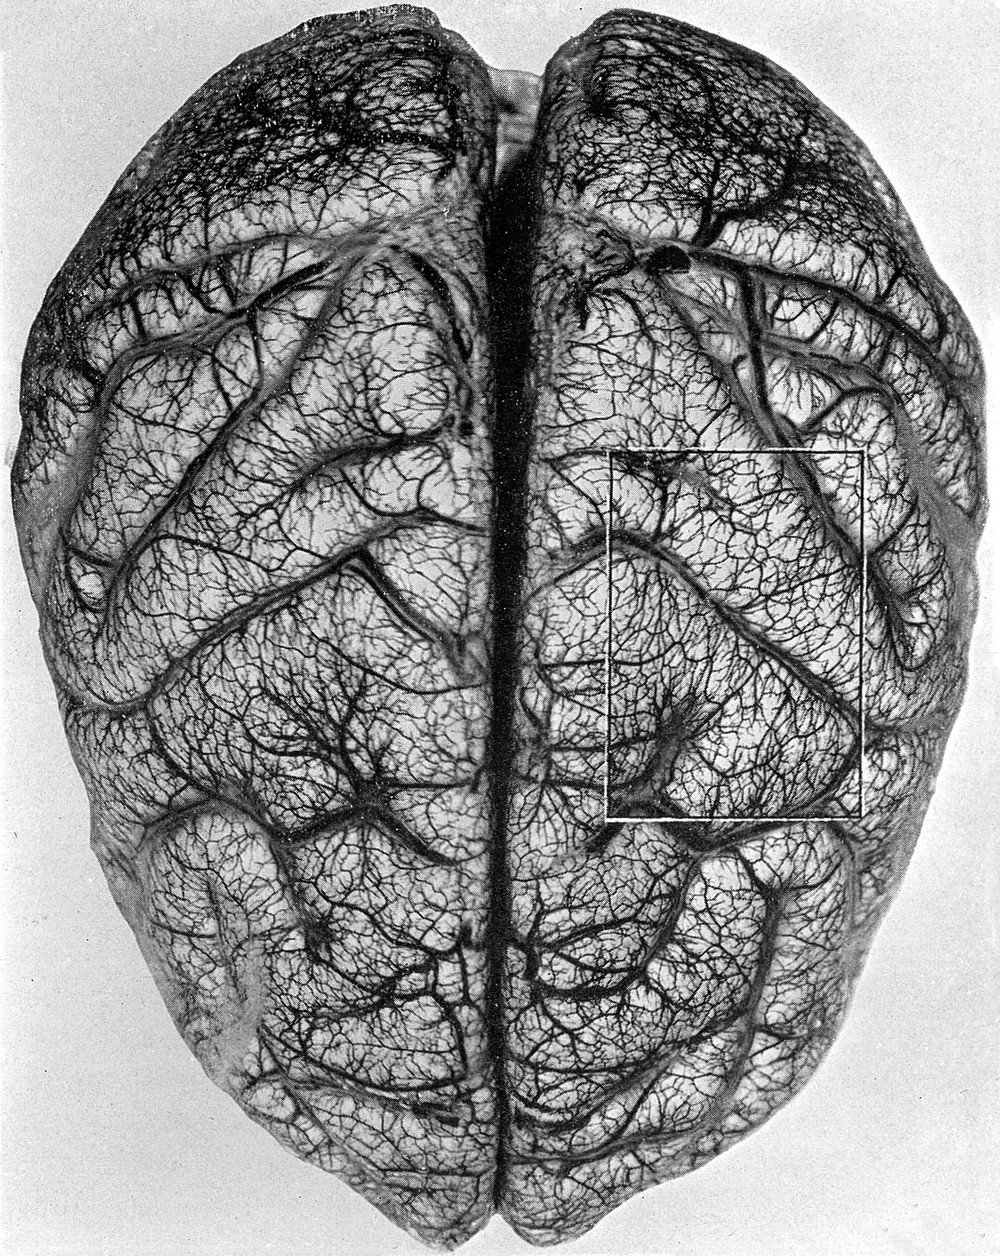 The arteries and veins of the brain, via  Wikimedia Commons.